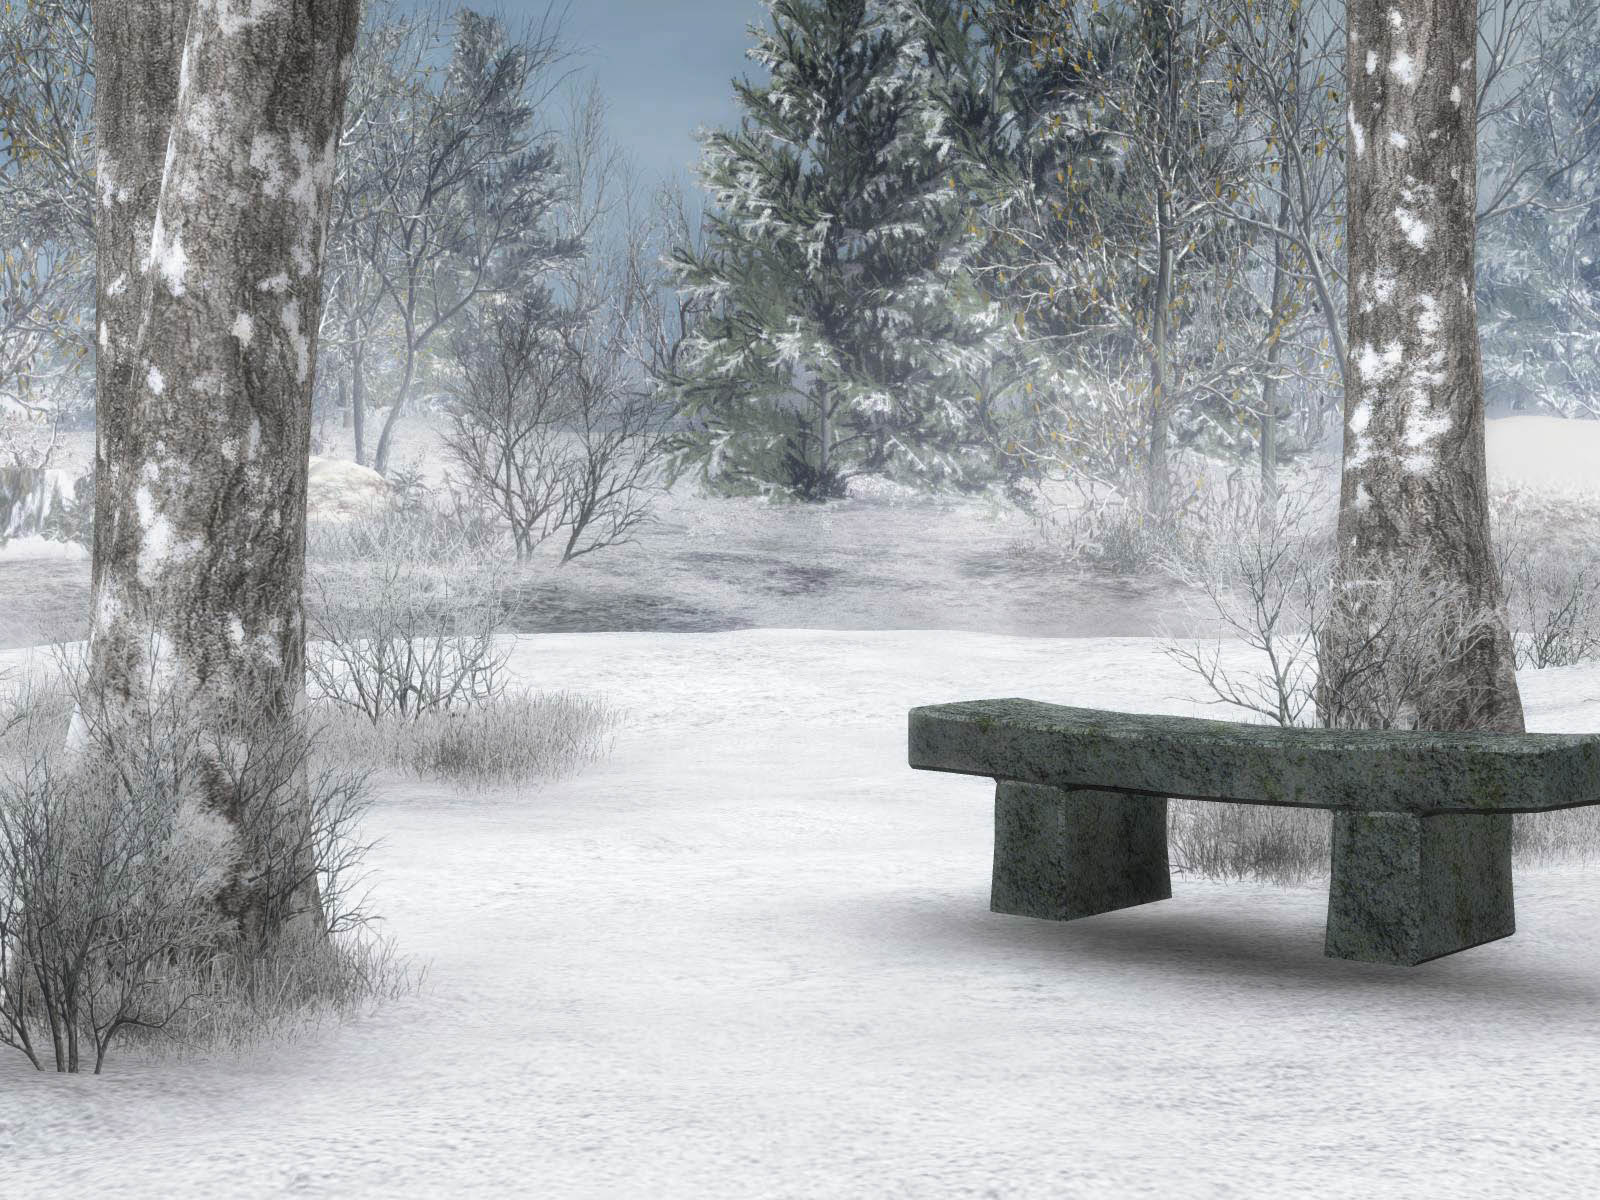 Winter Background wallpapers Winter Background stock photos 1600x1200